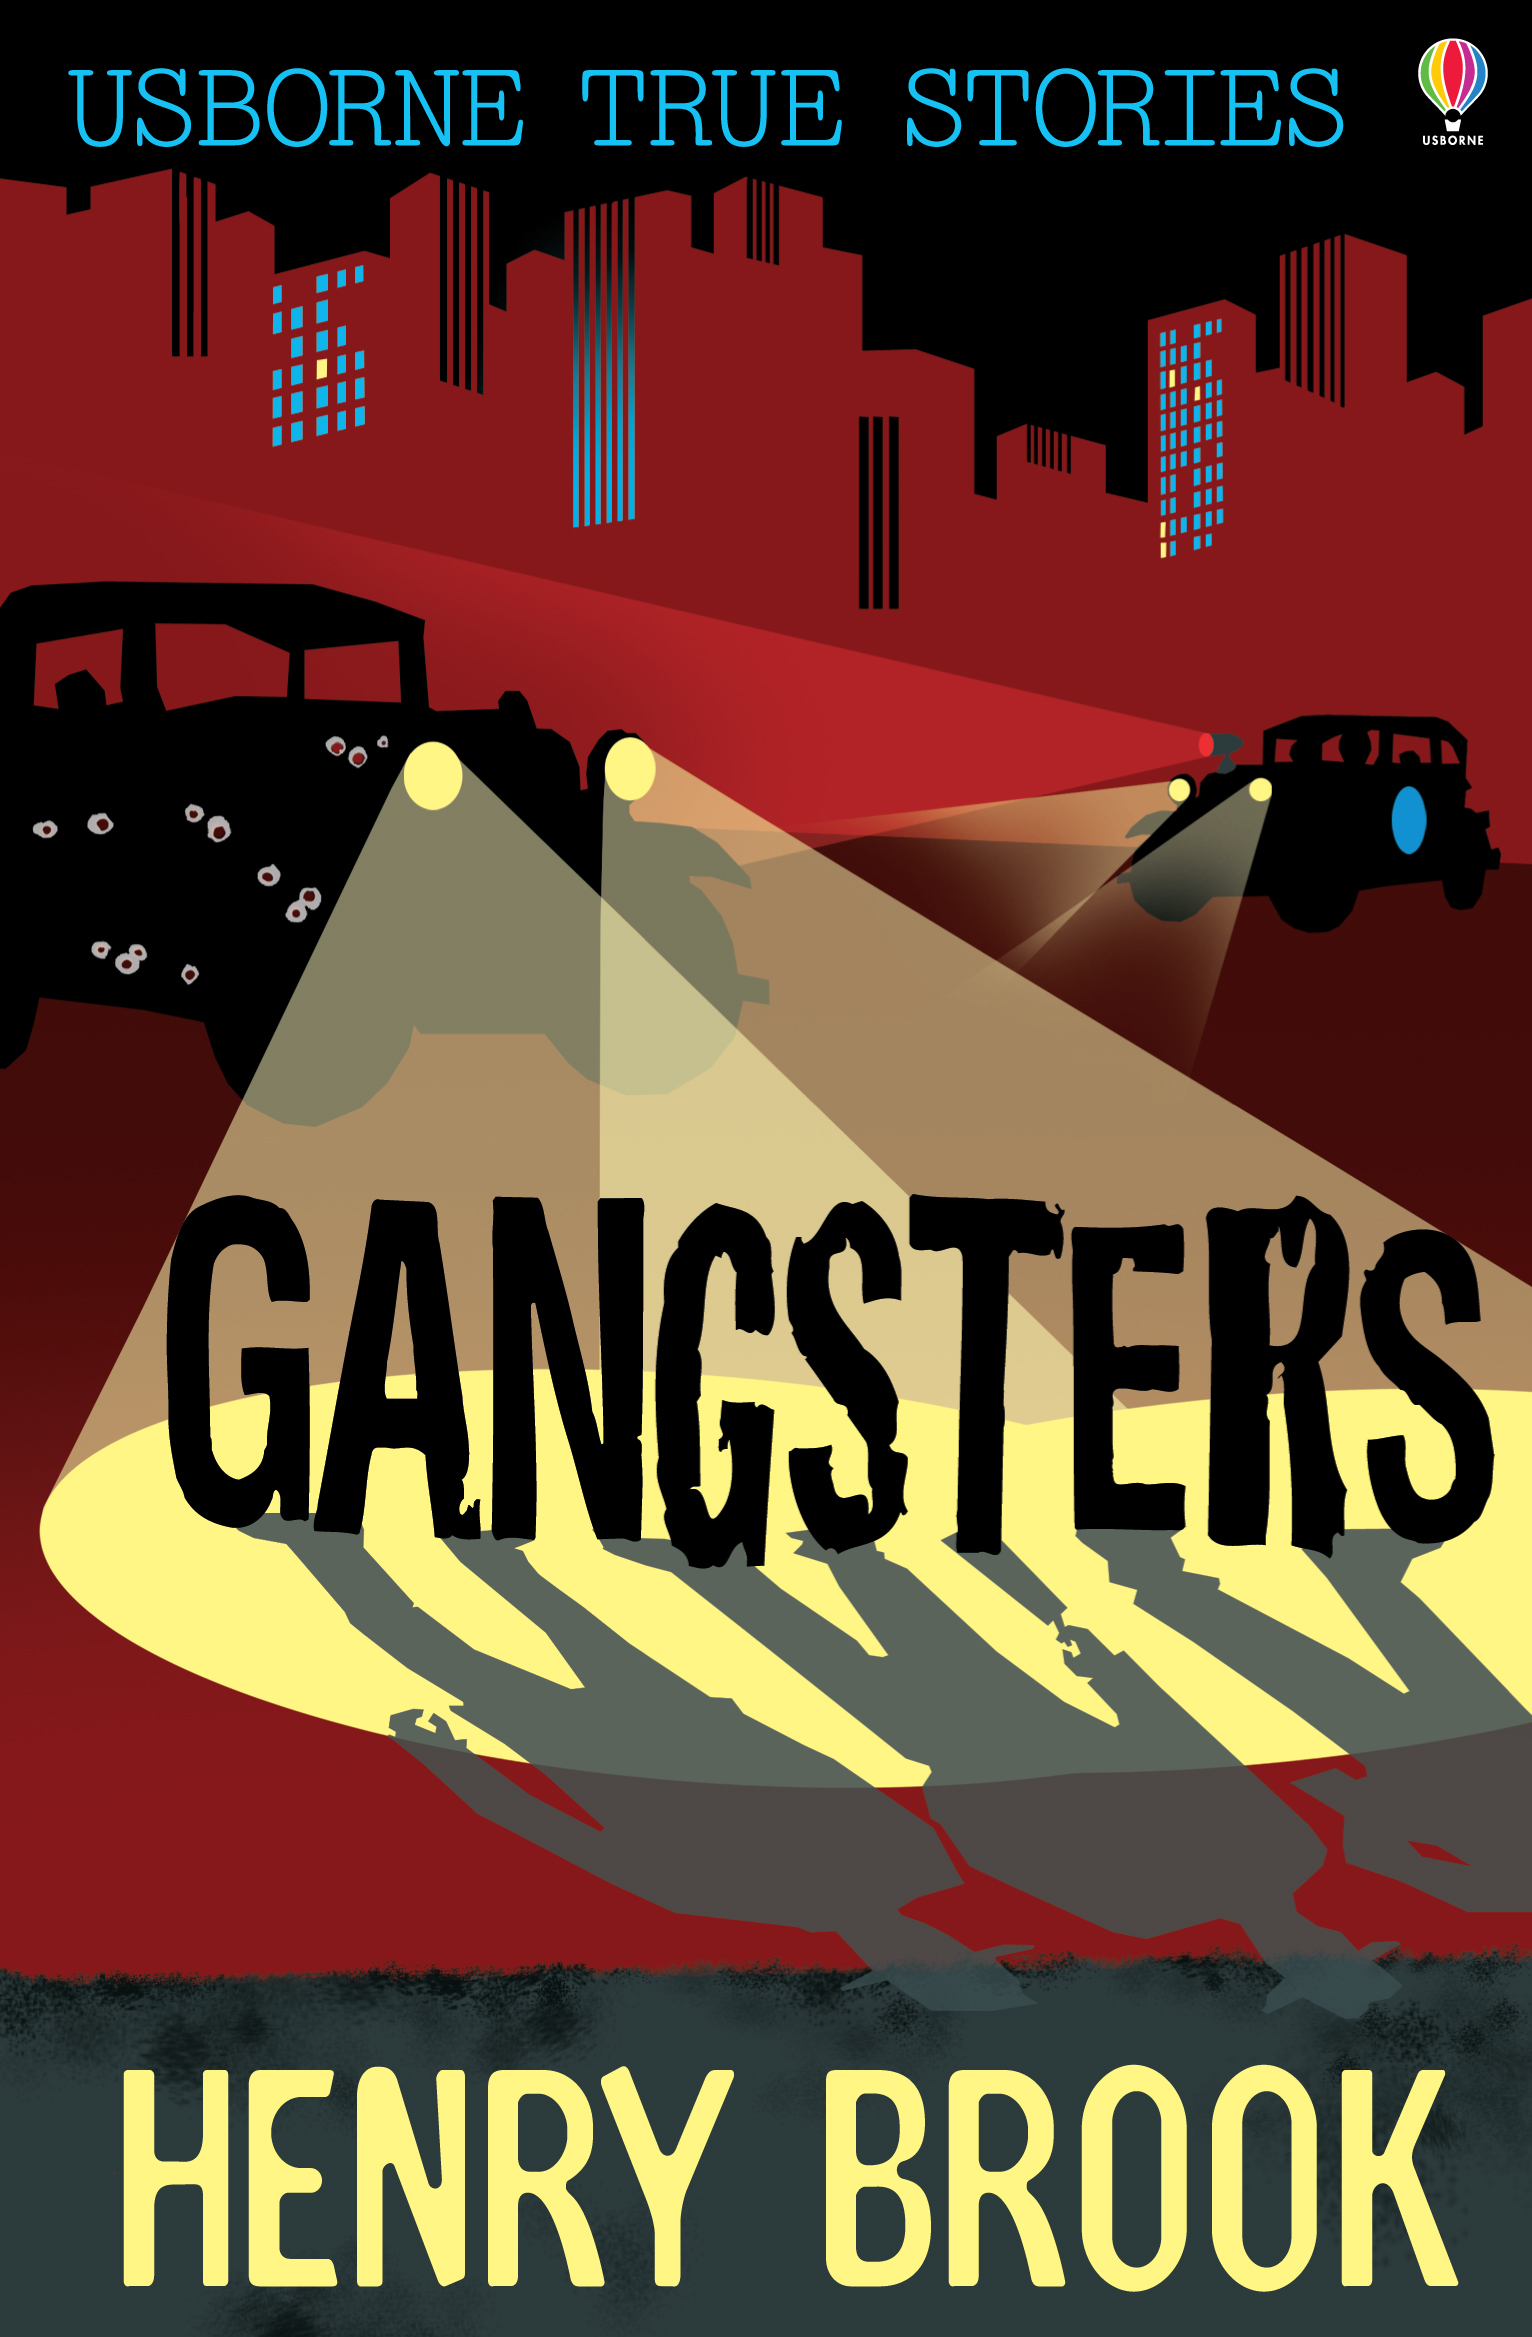 True Stories of Gangsters: Usborne True Stories